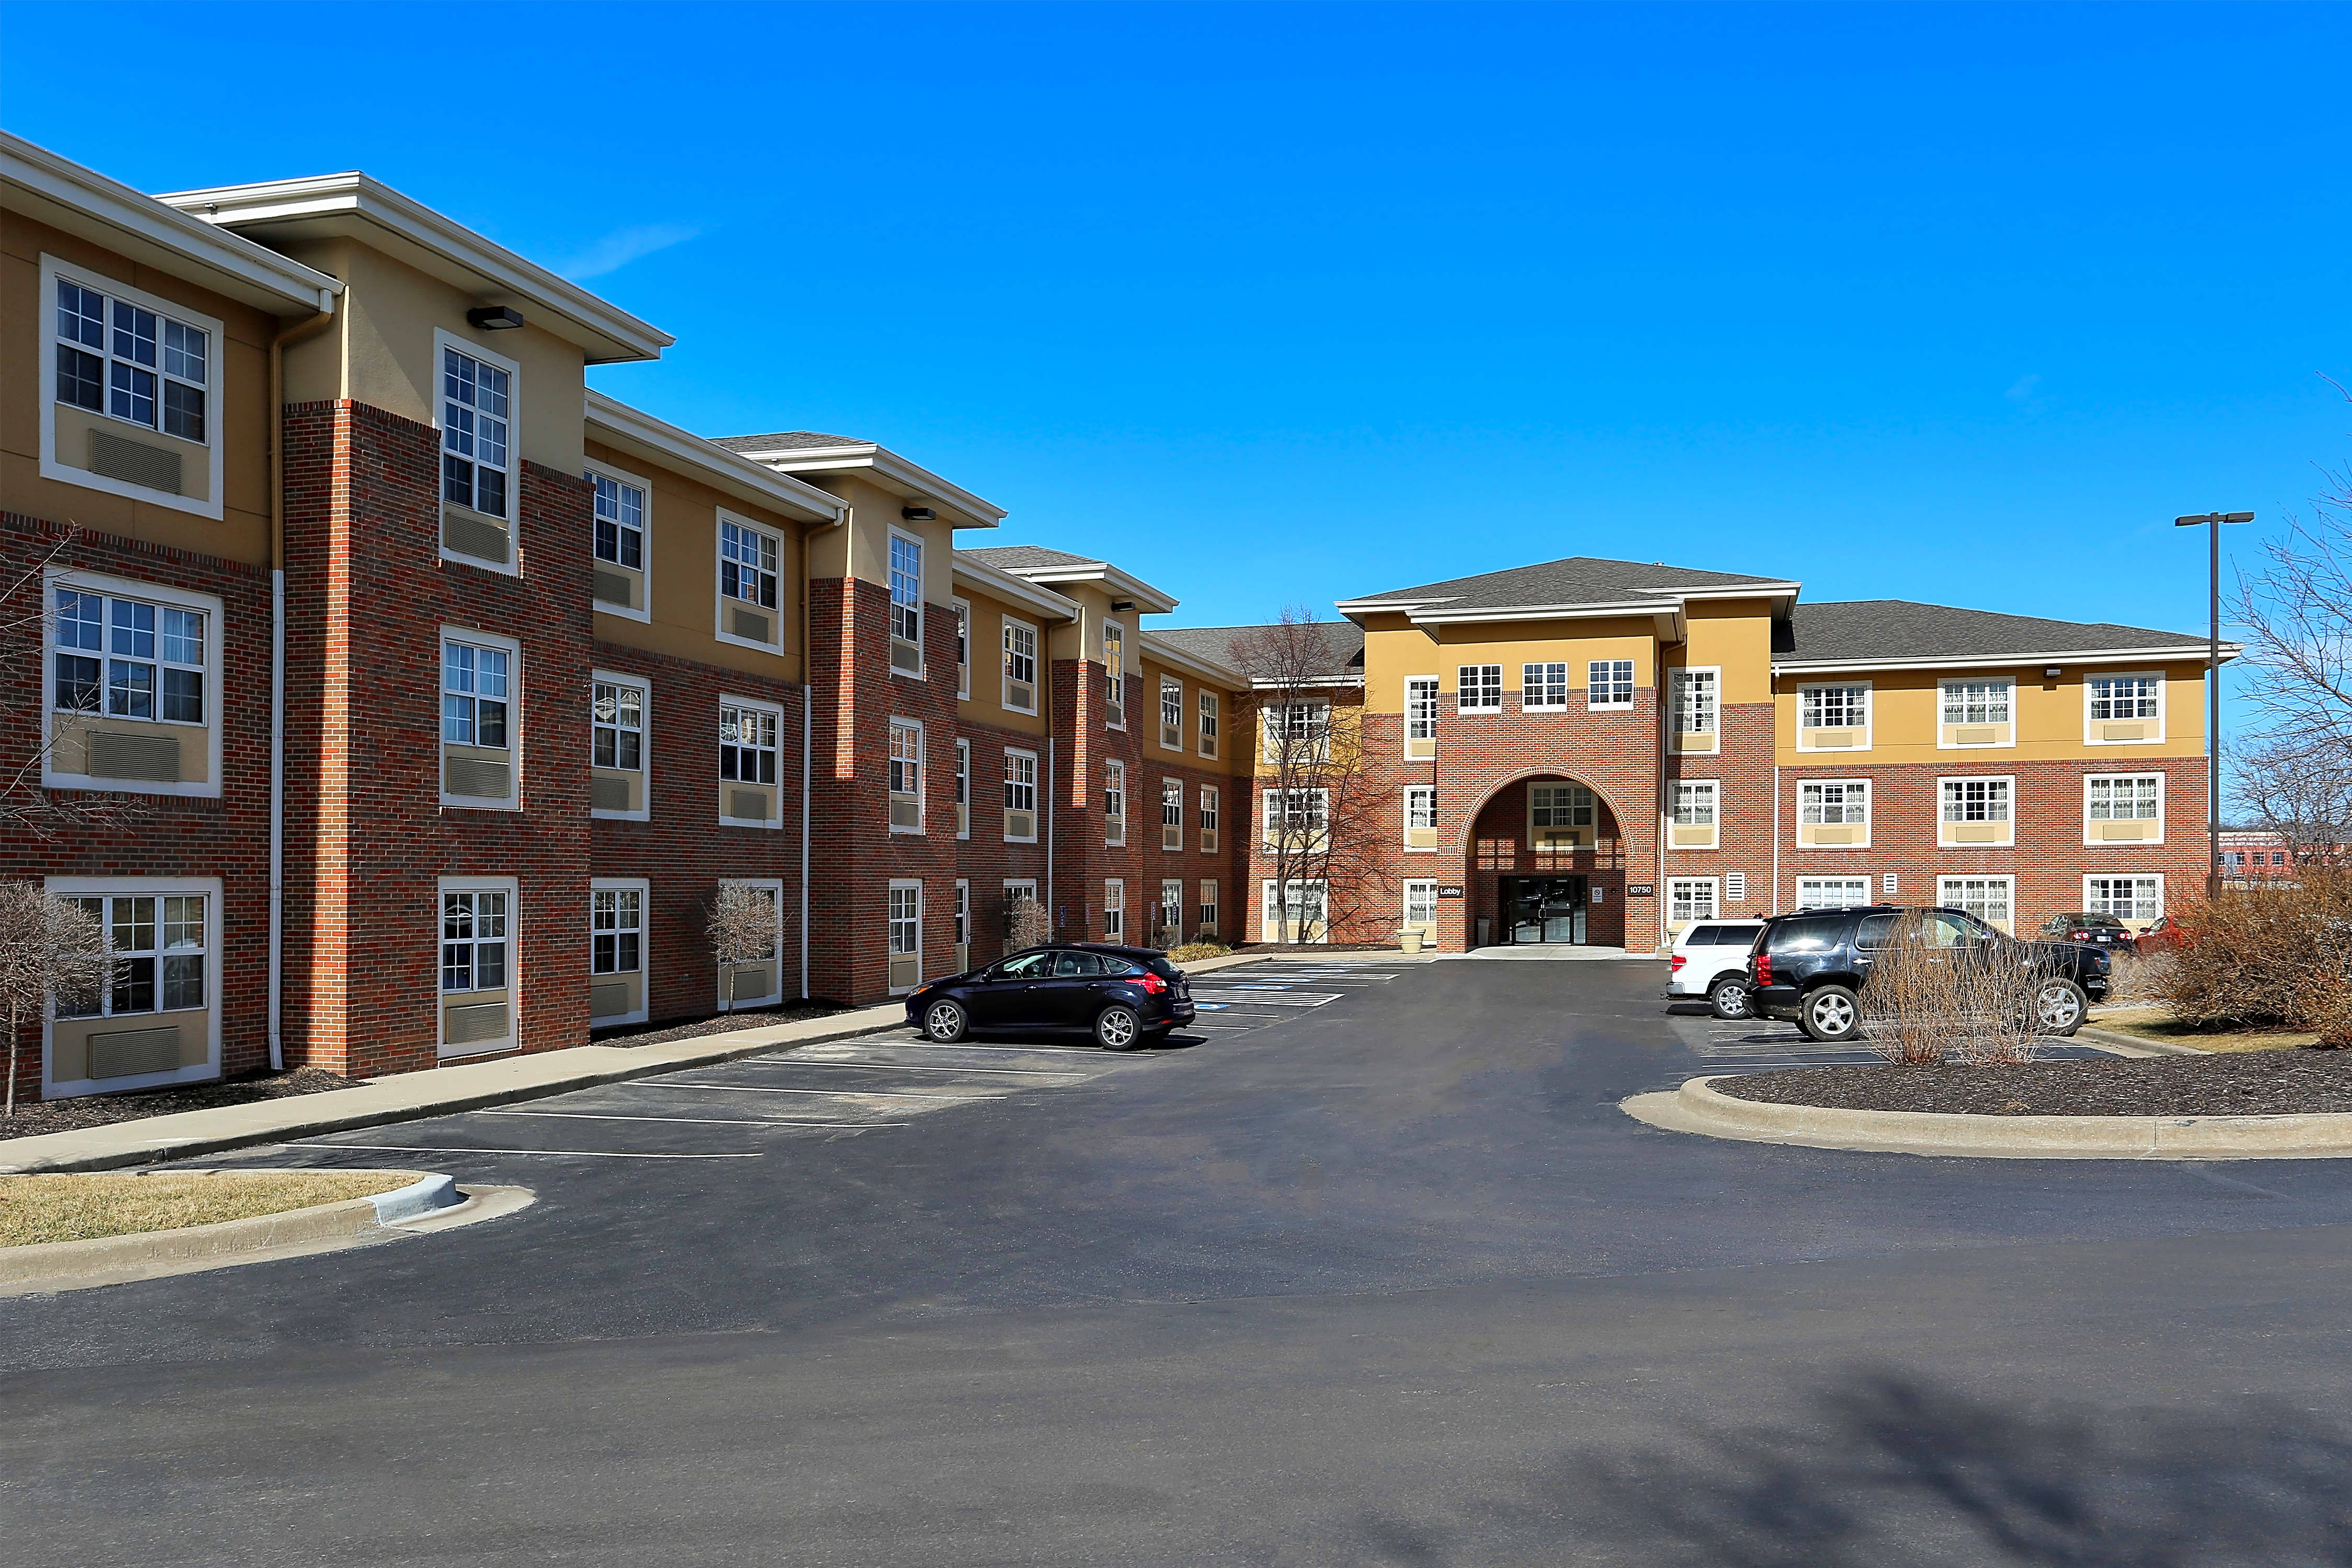 Apartments Near ITT Technical Institute-Kansas City Furnished Studio - Kansas City - Overland Park - Quivira Rd. for ITT Technical Institute-Kansas City Students in Kansas City, MO